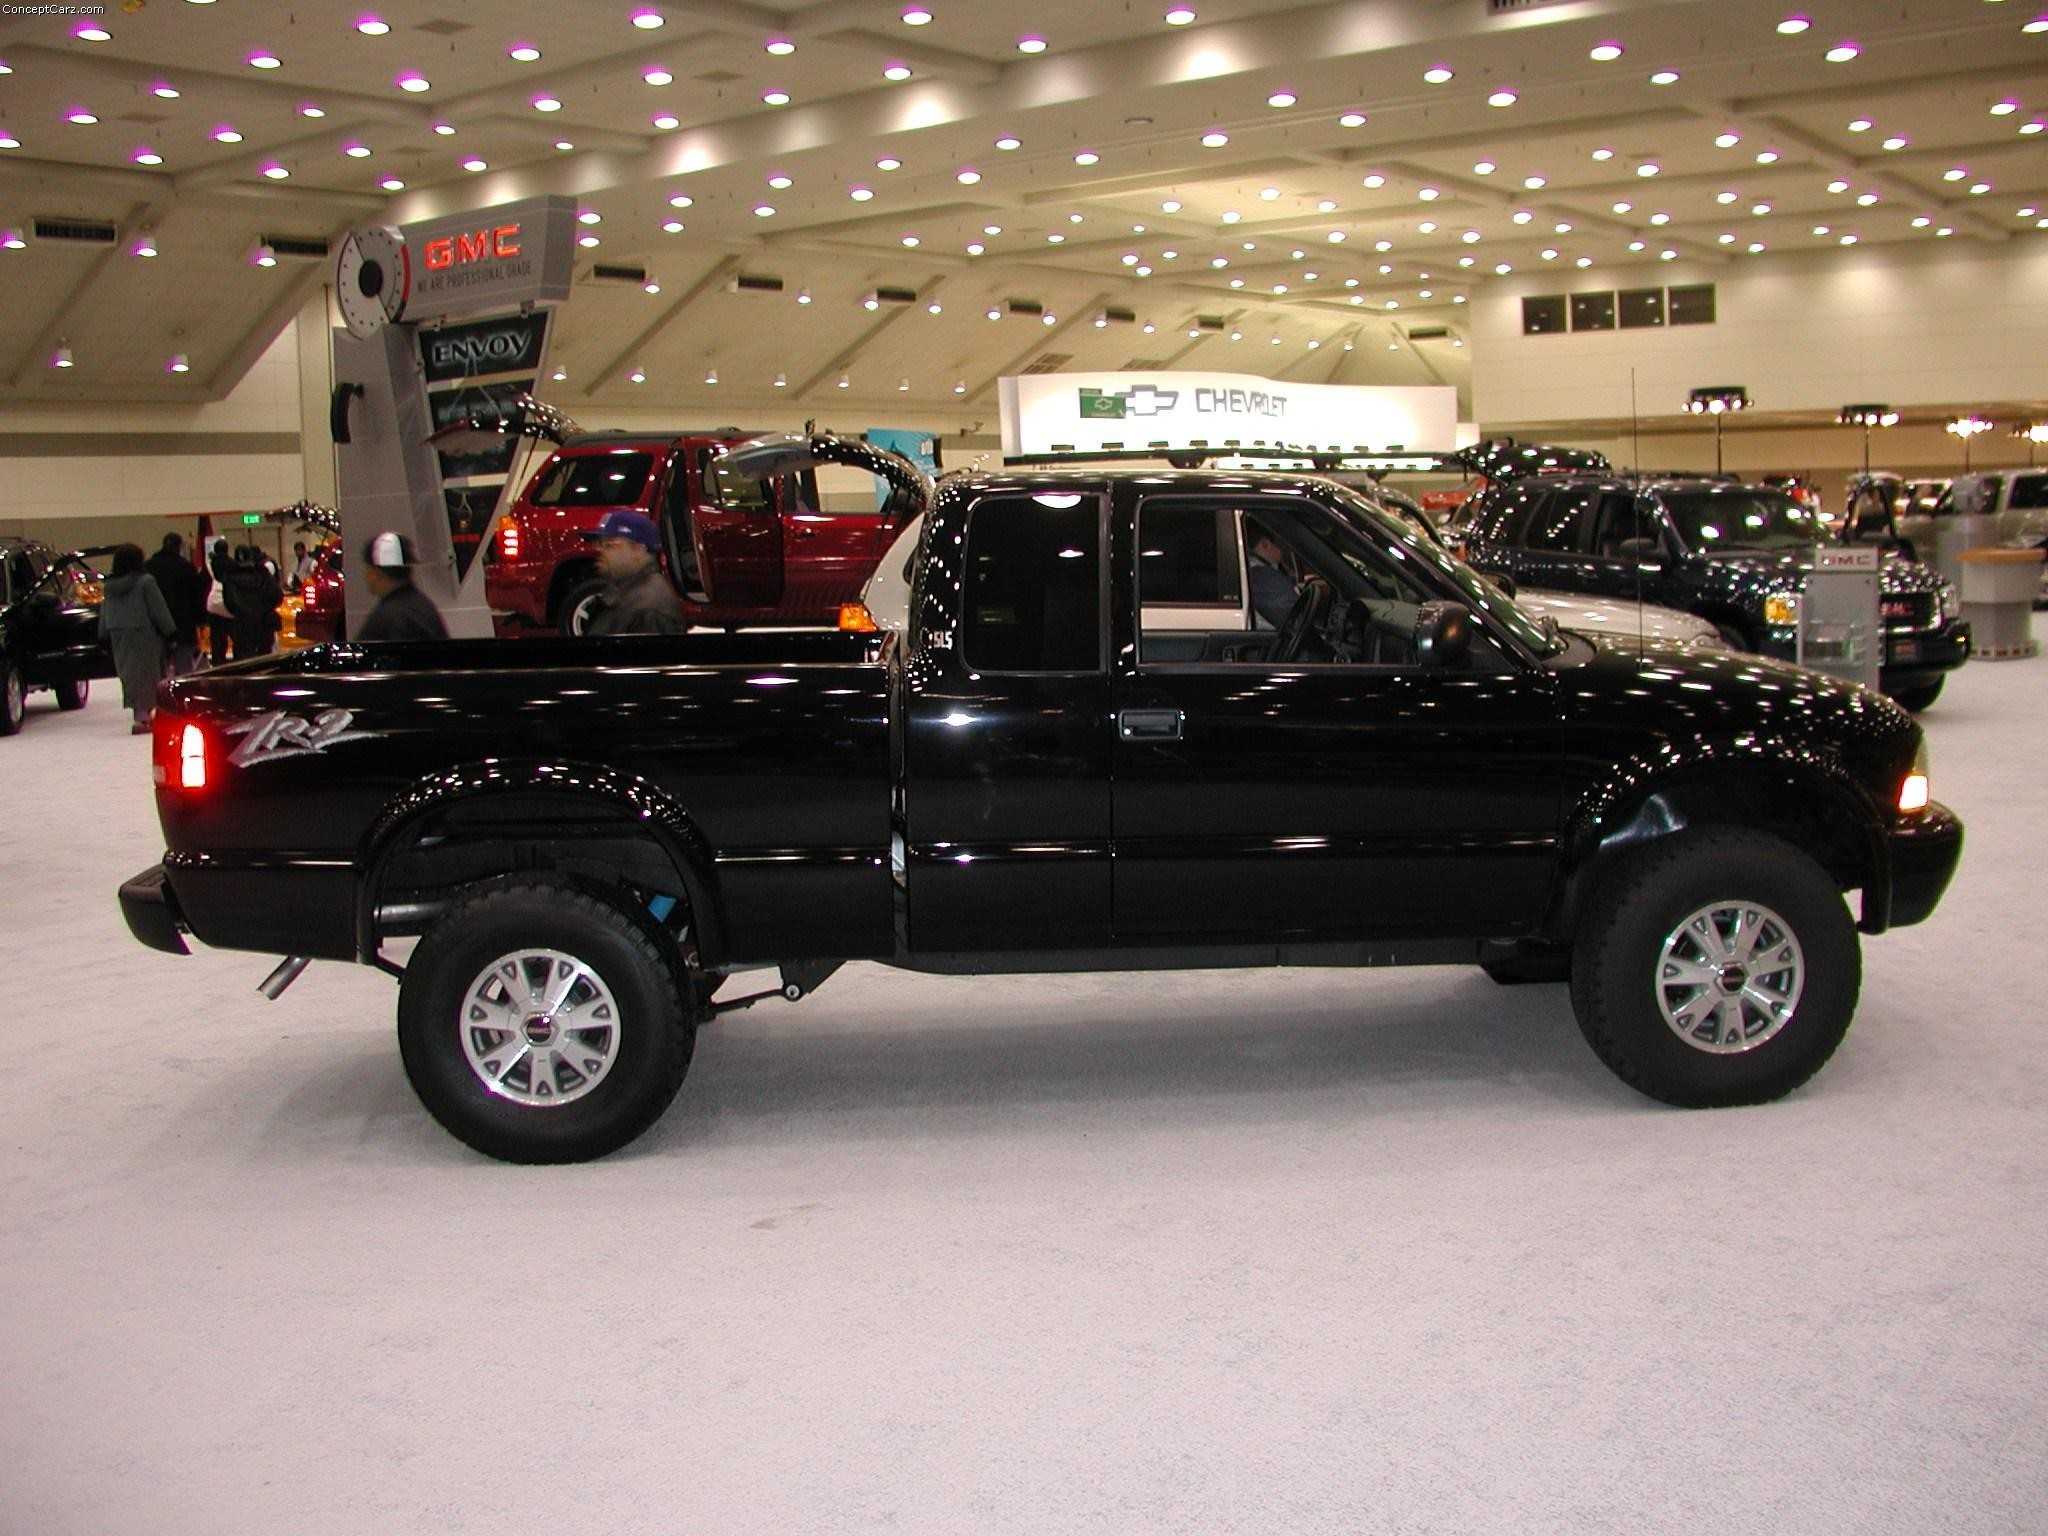 Free Download 2002 Gmc Sonoma Images Photo Gmc Sonoma Baltimore 002 With